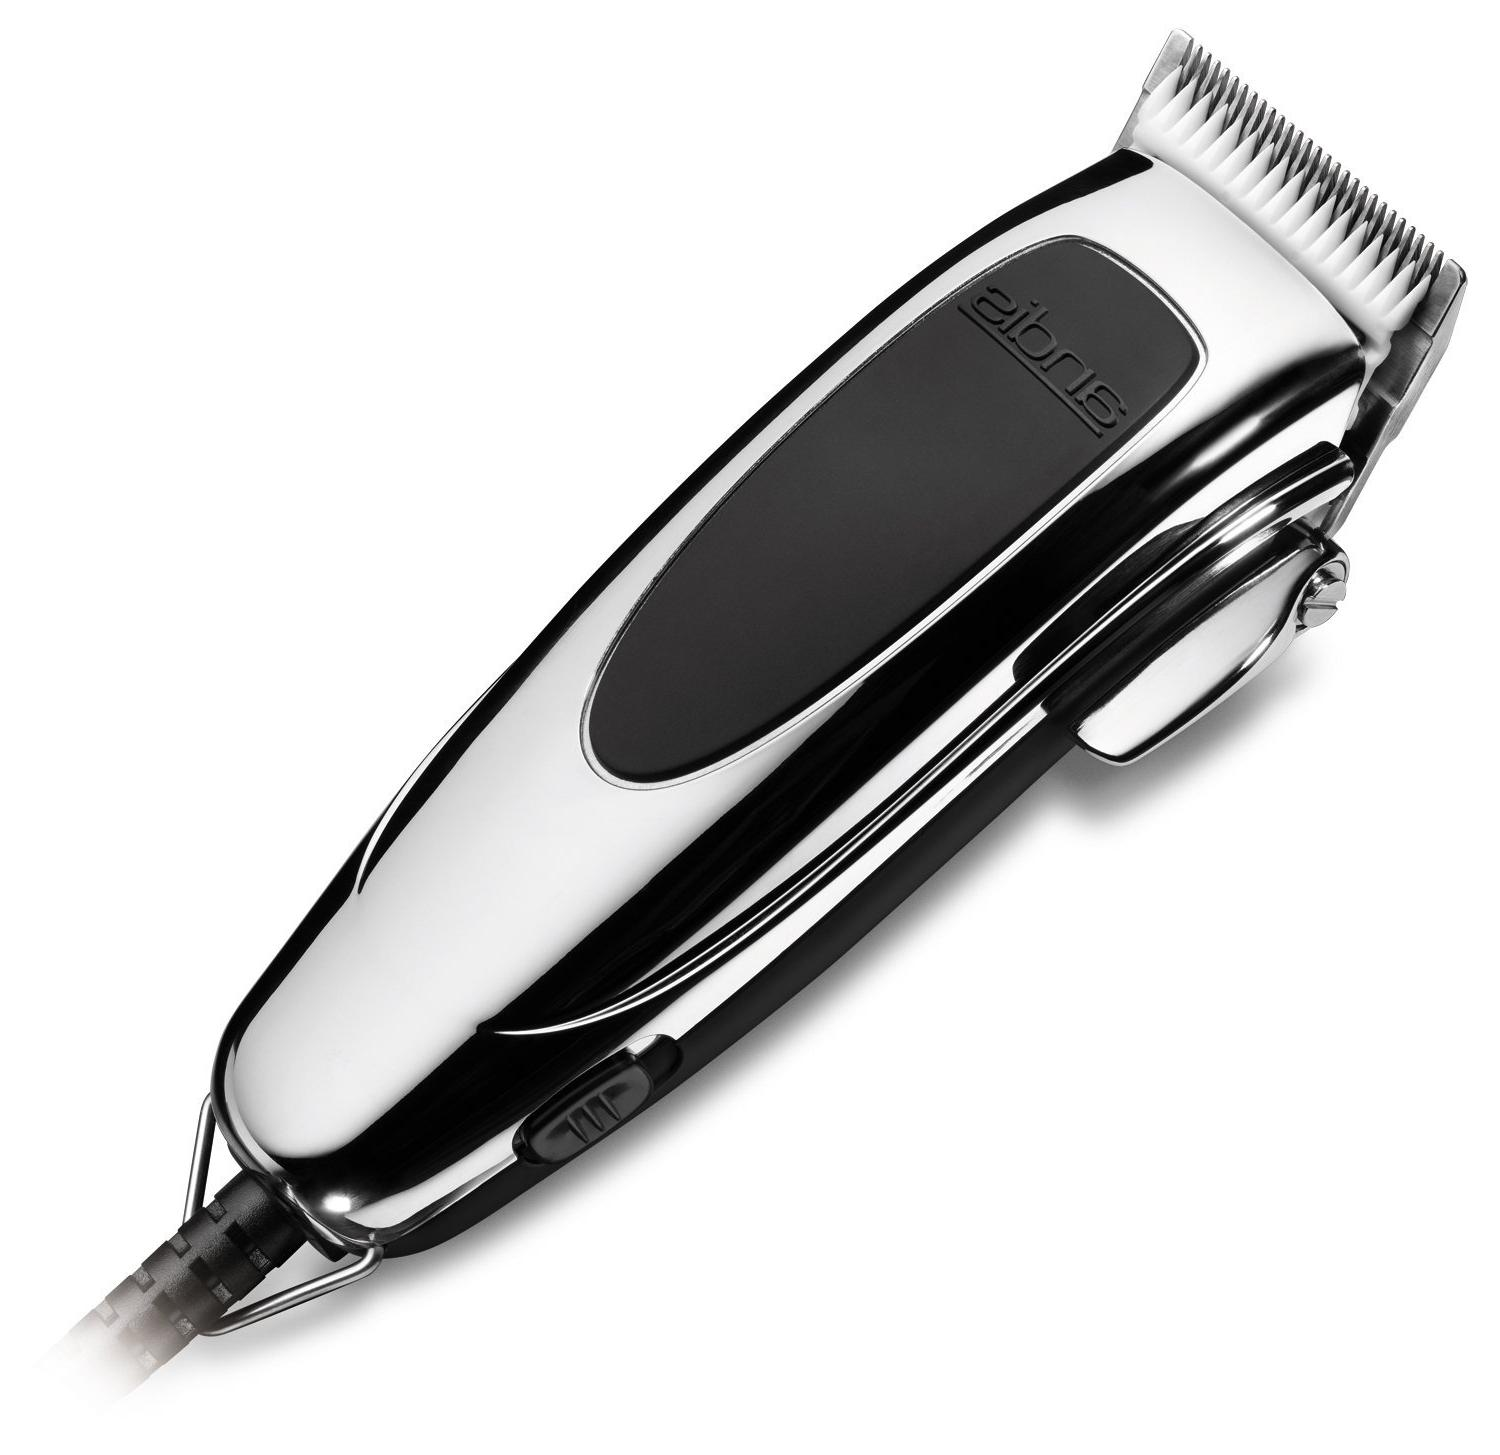 Best HD Barber Clippers Clip Art Cdr » Free Vector Art, Images.